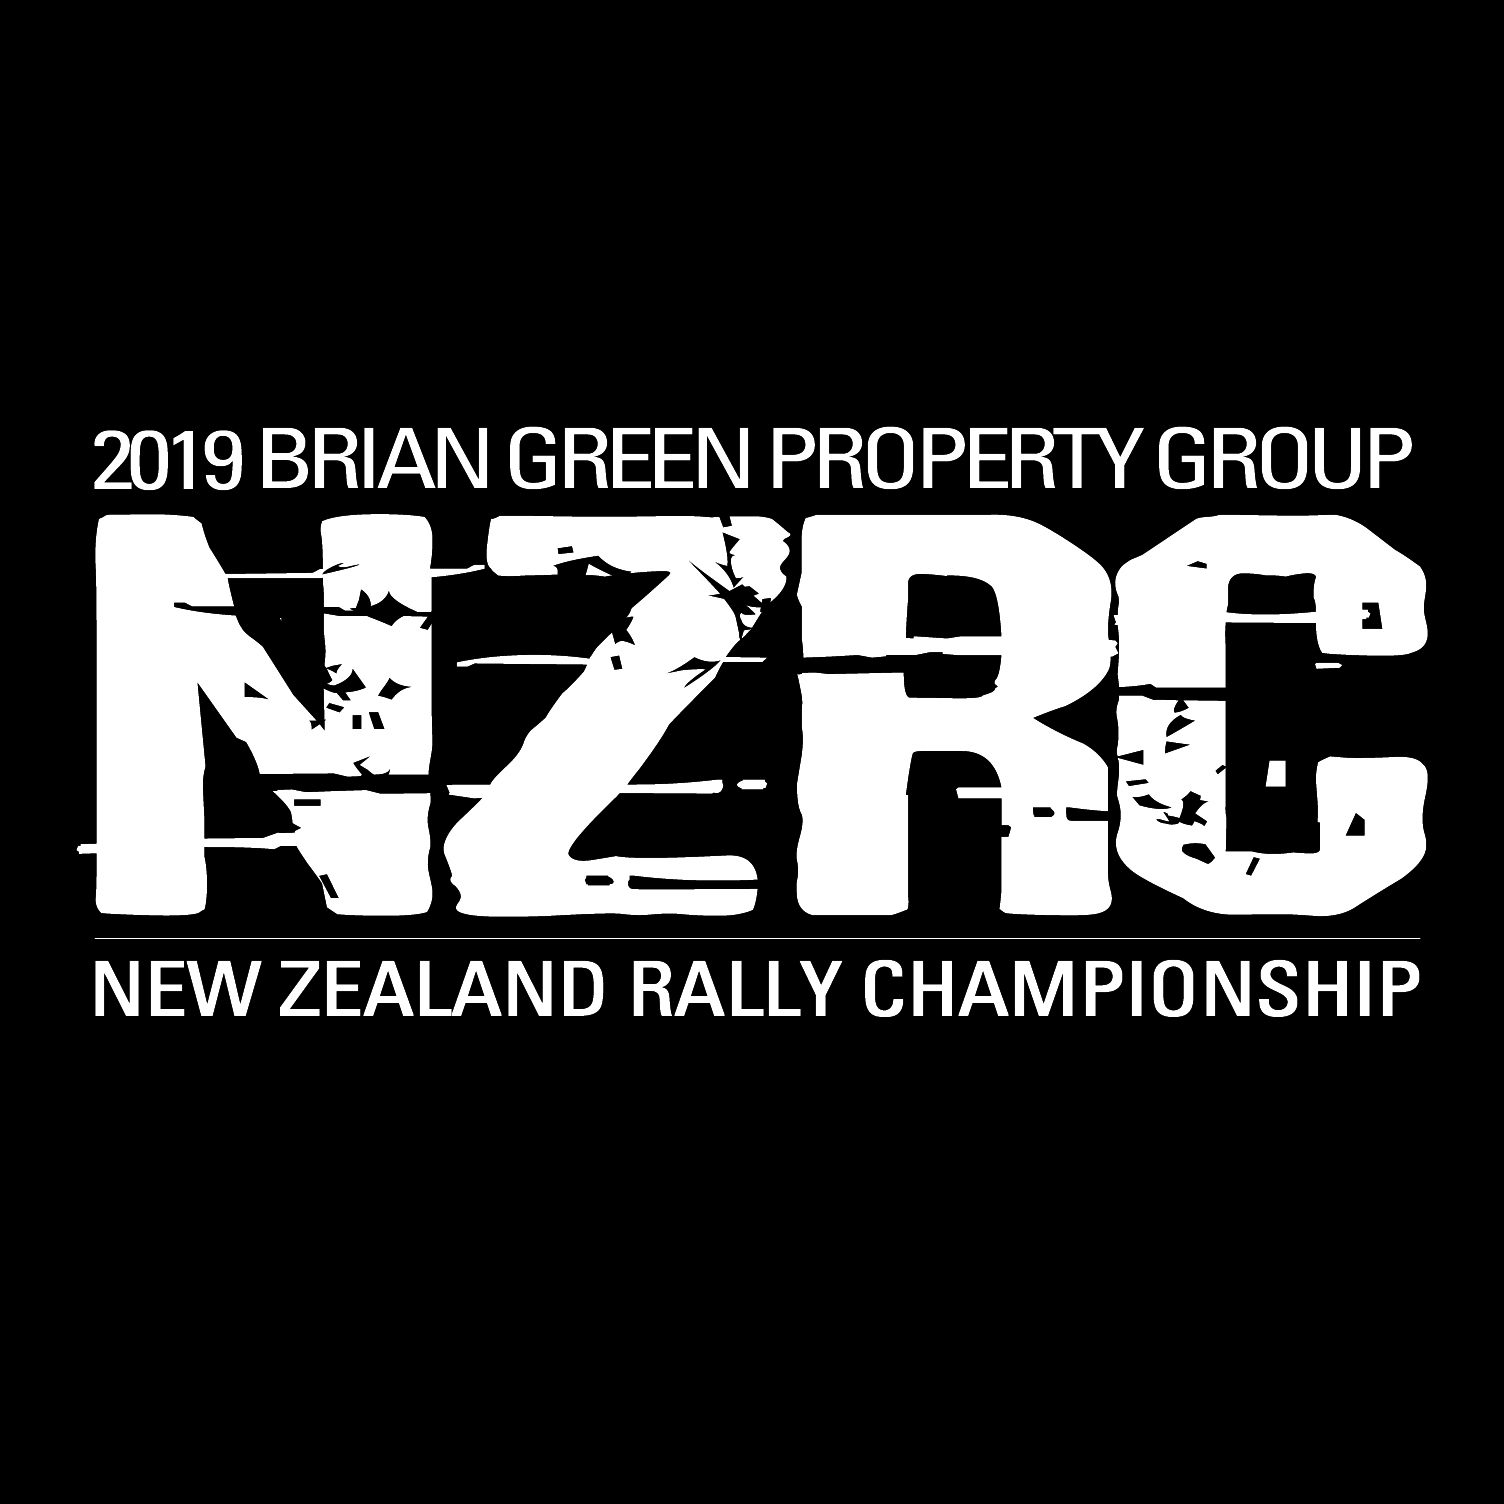 Ken Block adds second NZ event to schedule | :: Brian Green Property Group New Zealand Rally Championship ::